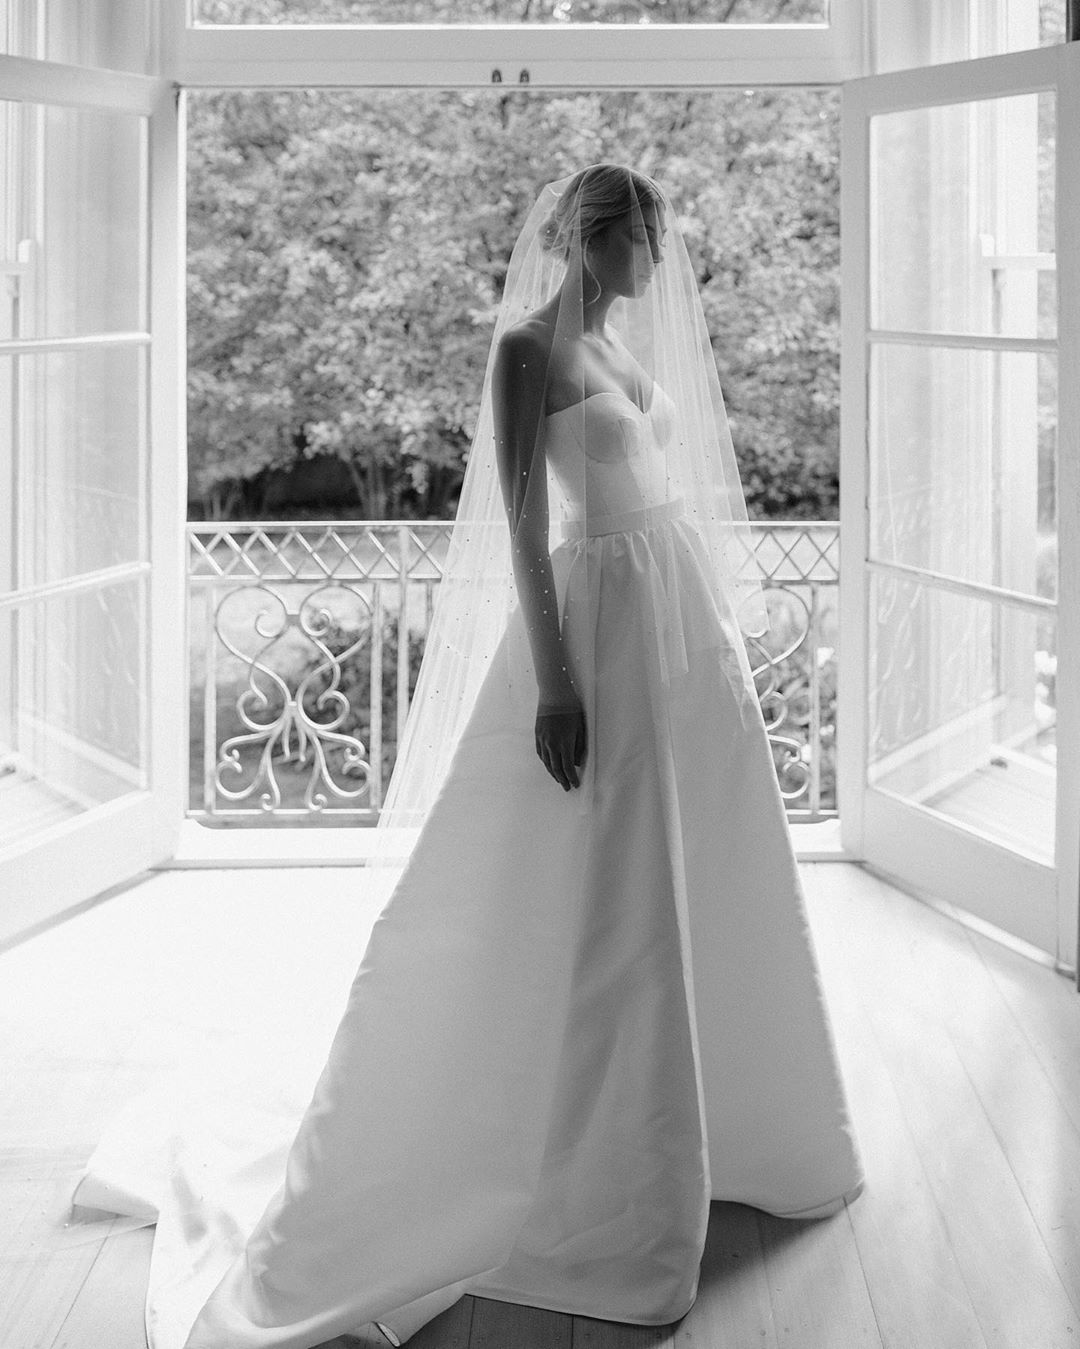 Model wears Blake Camille ball gown wedding dress style silhouette in twill by Karen Willis Holmes